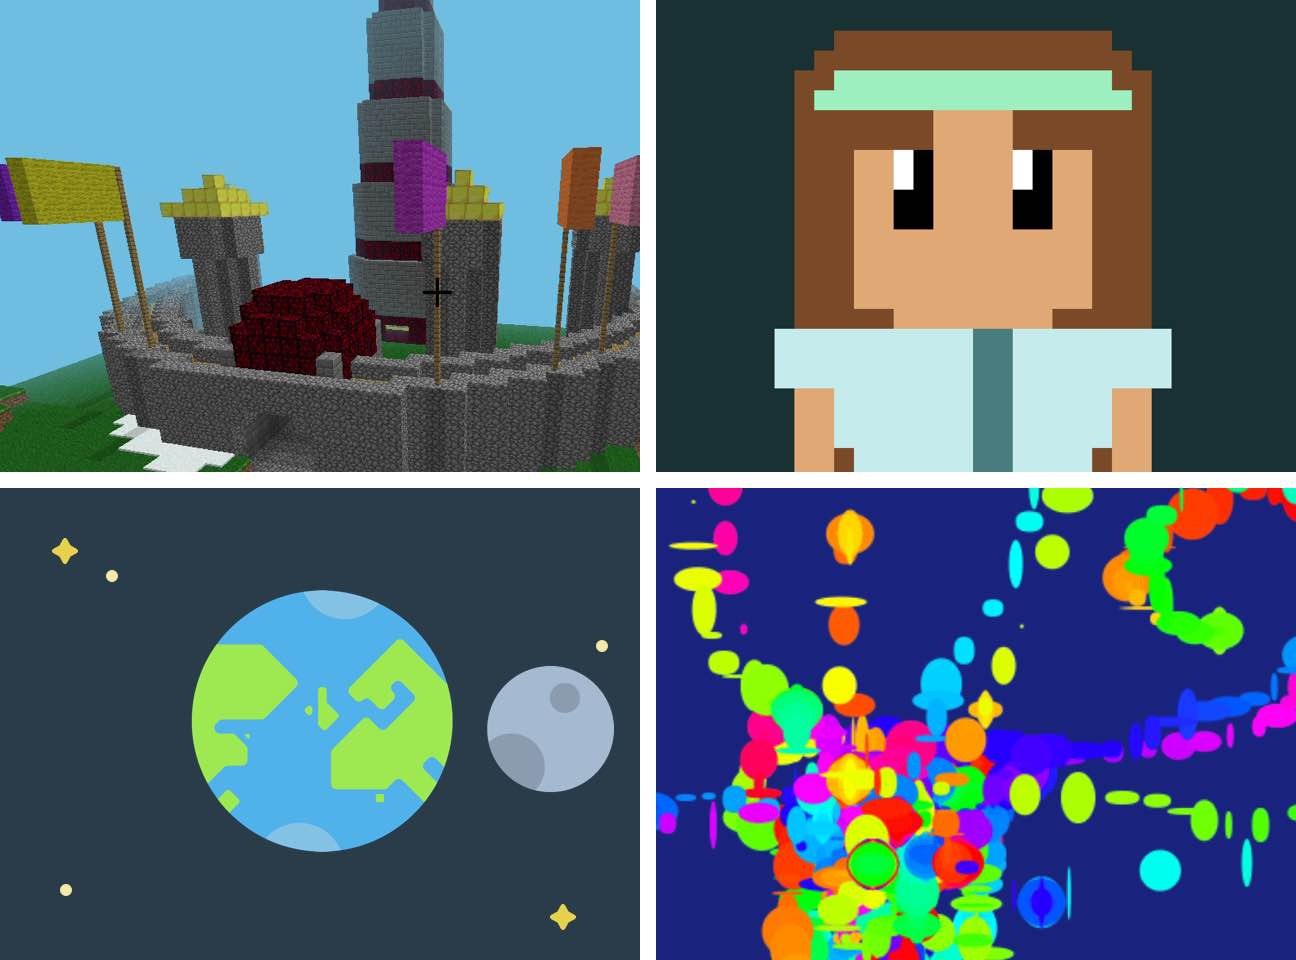 Get creative with art, music, and Minecraft